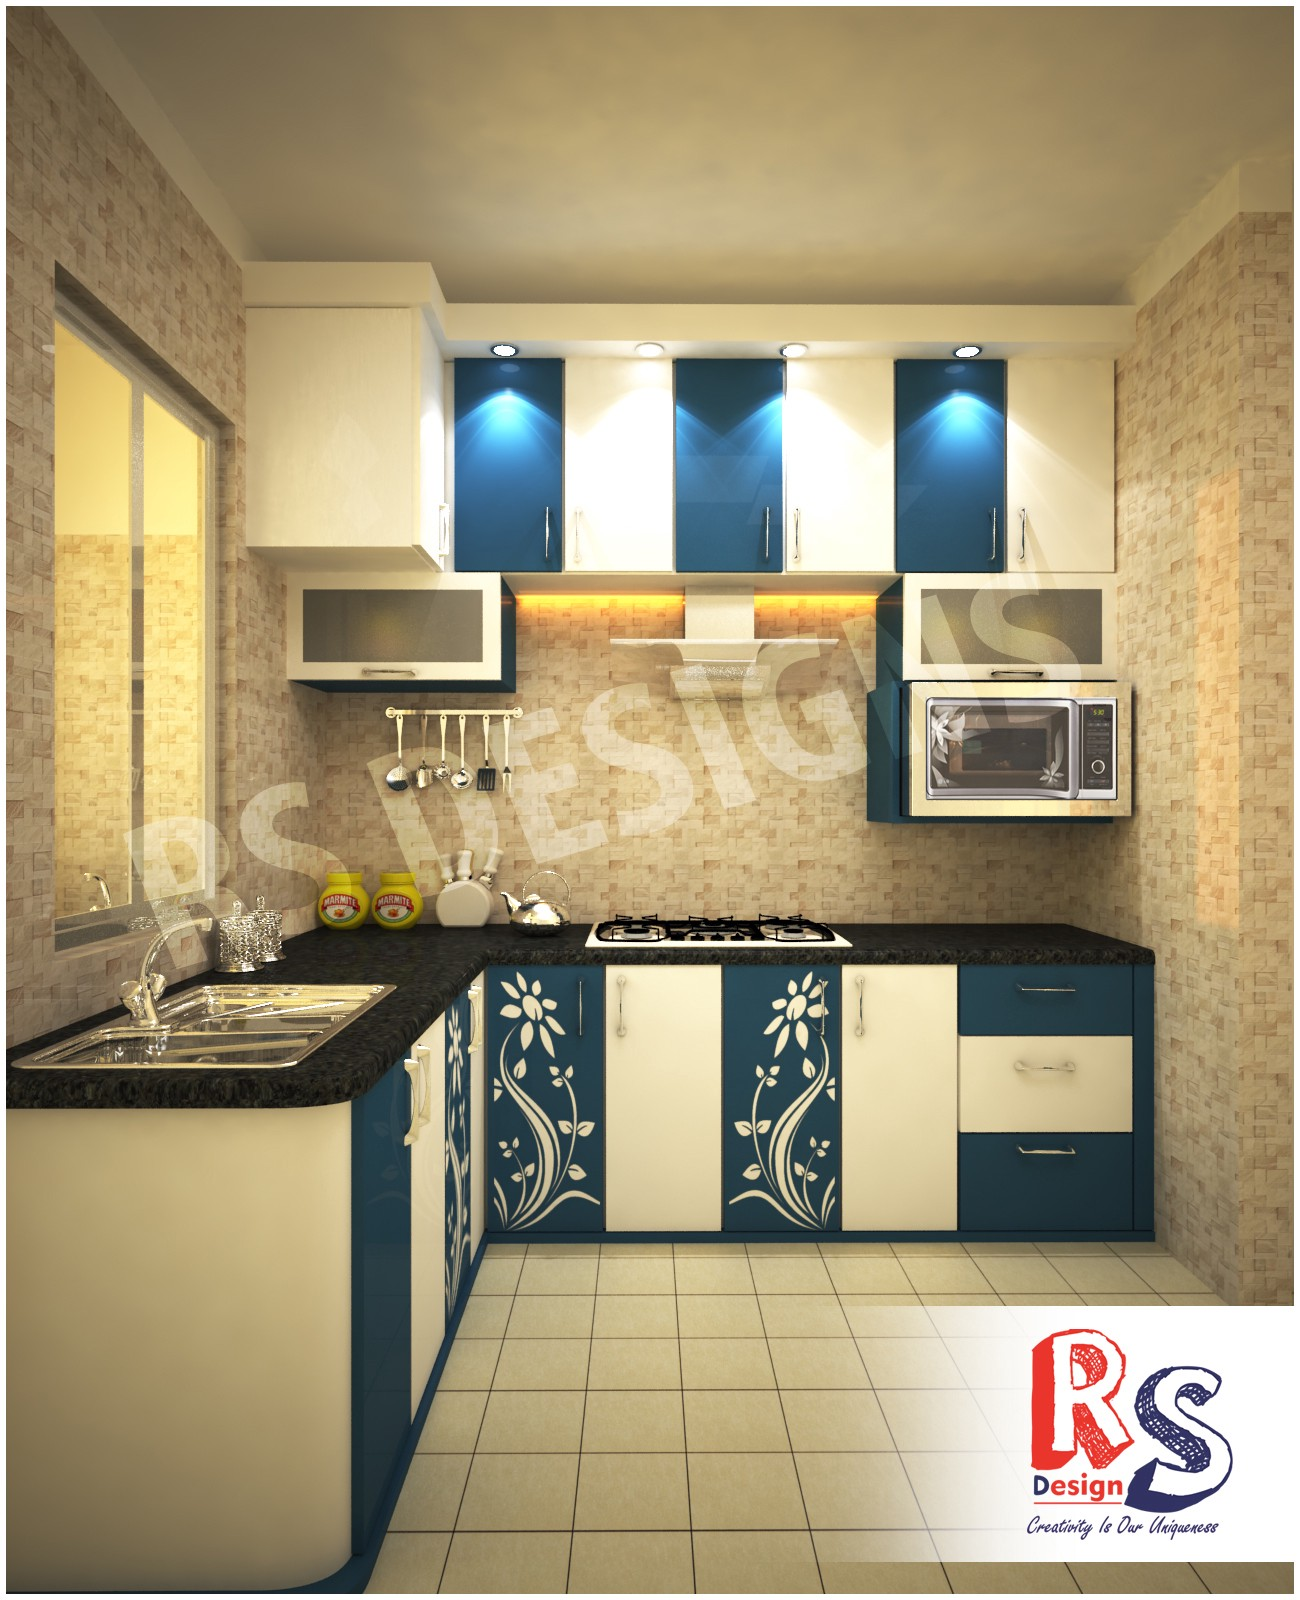 Modular Kitchen Magnon India: Modern Modular Kitchen Designs India